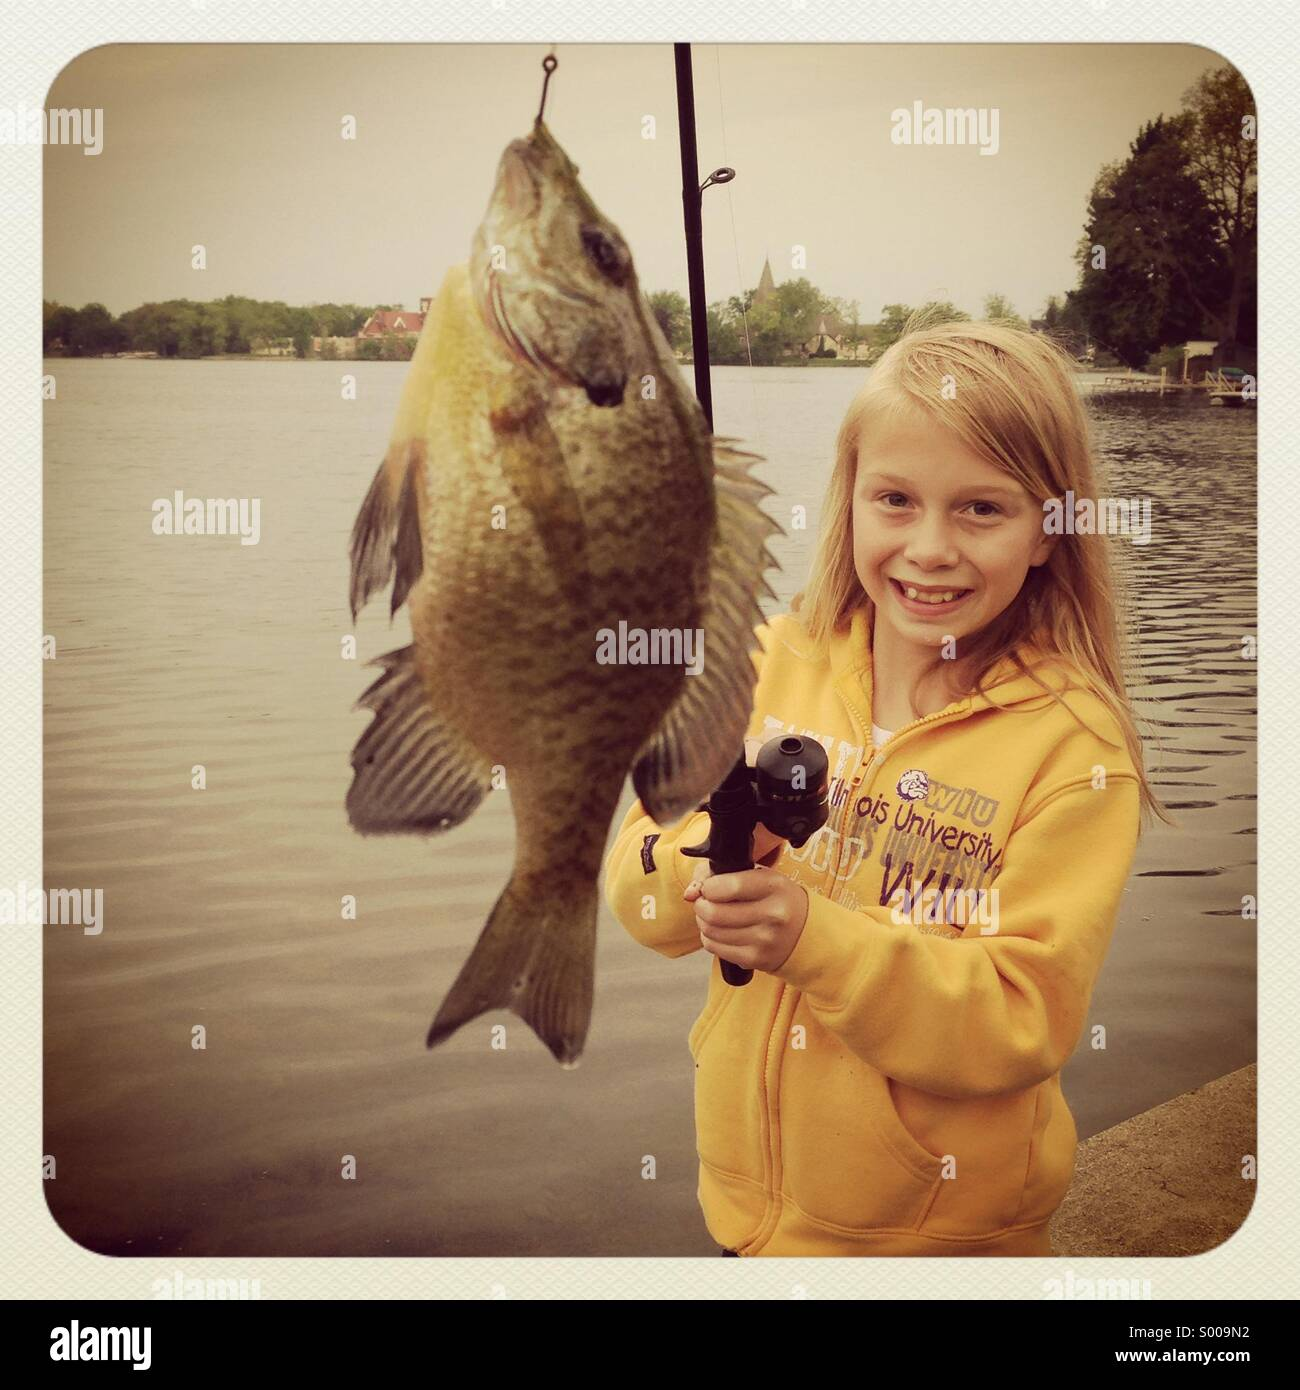 A little girl reels in a little fish. - Stock Image